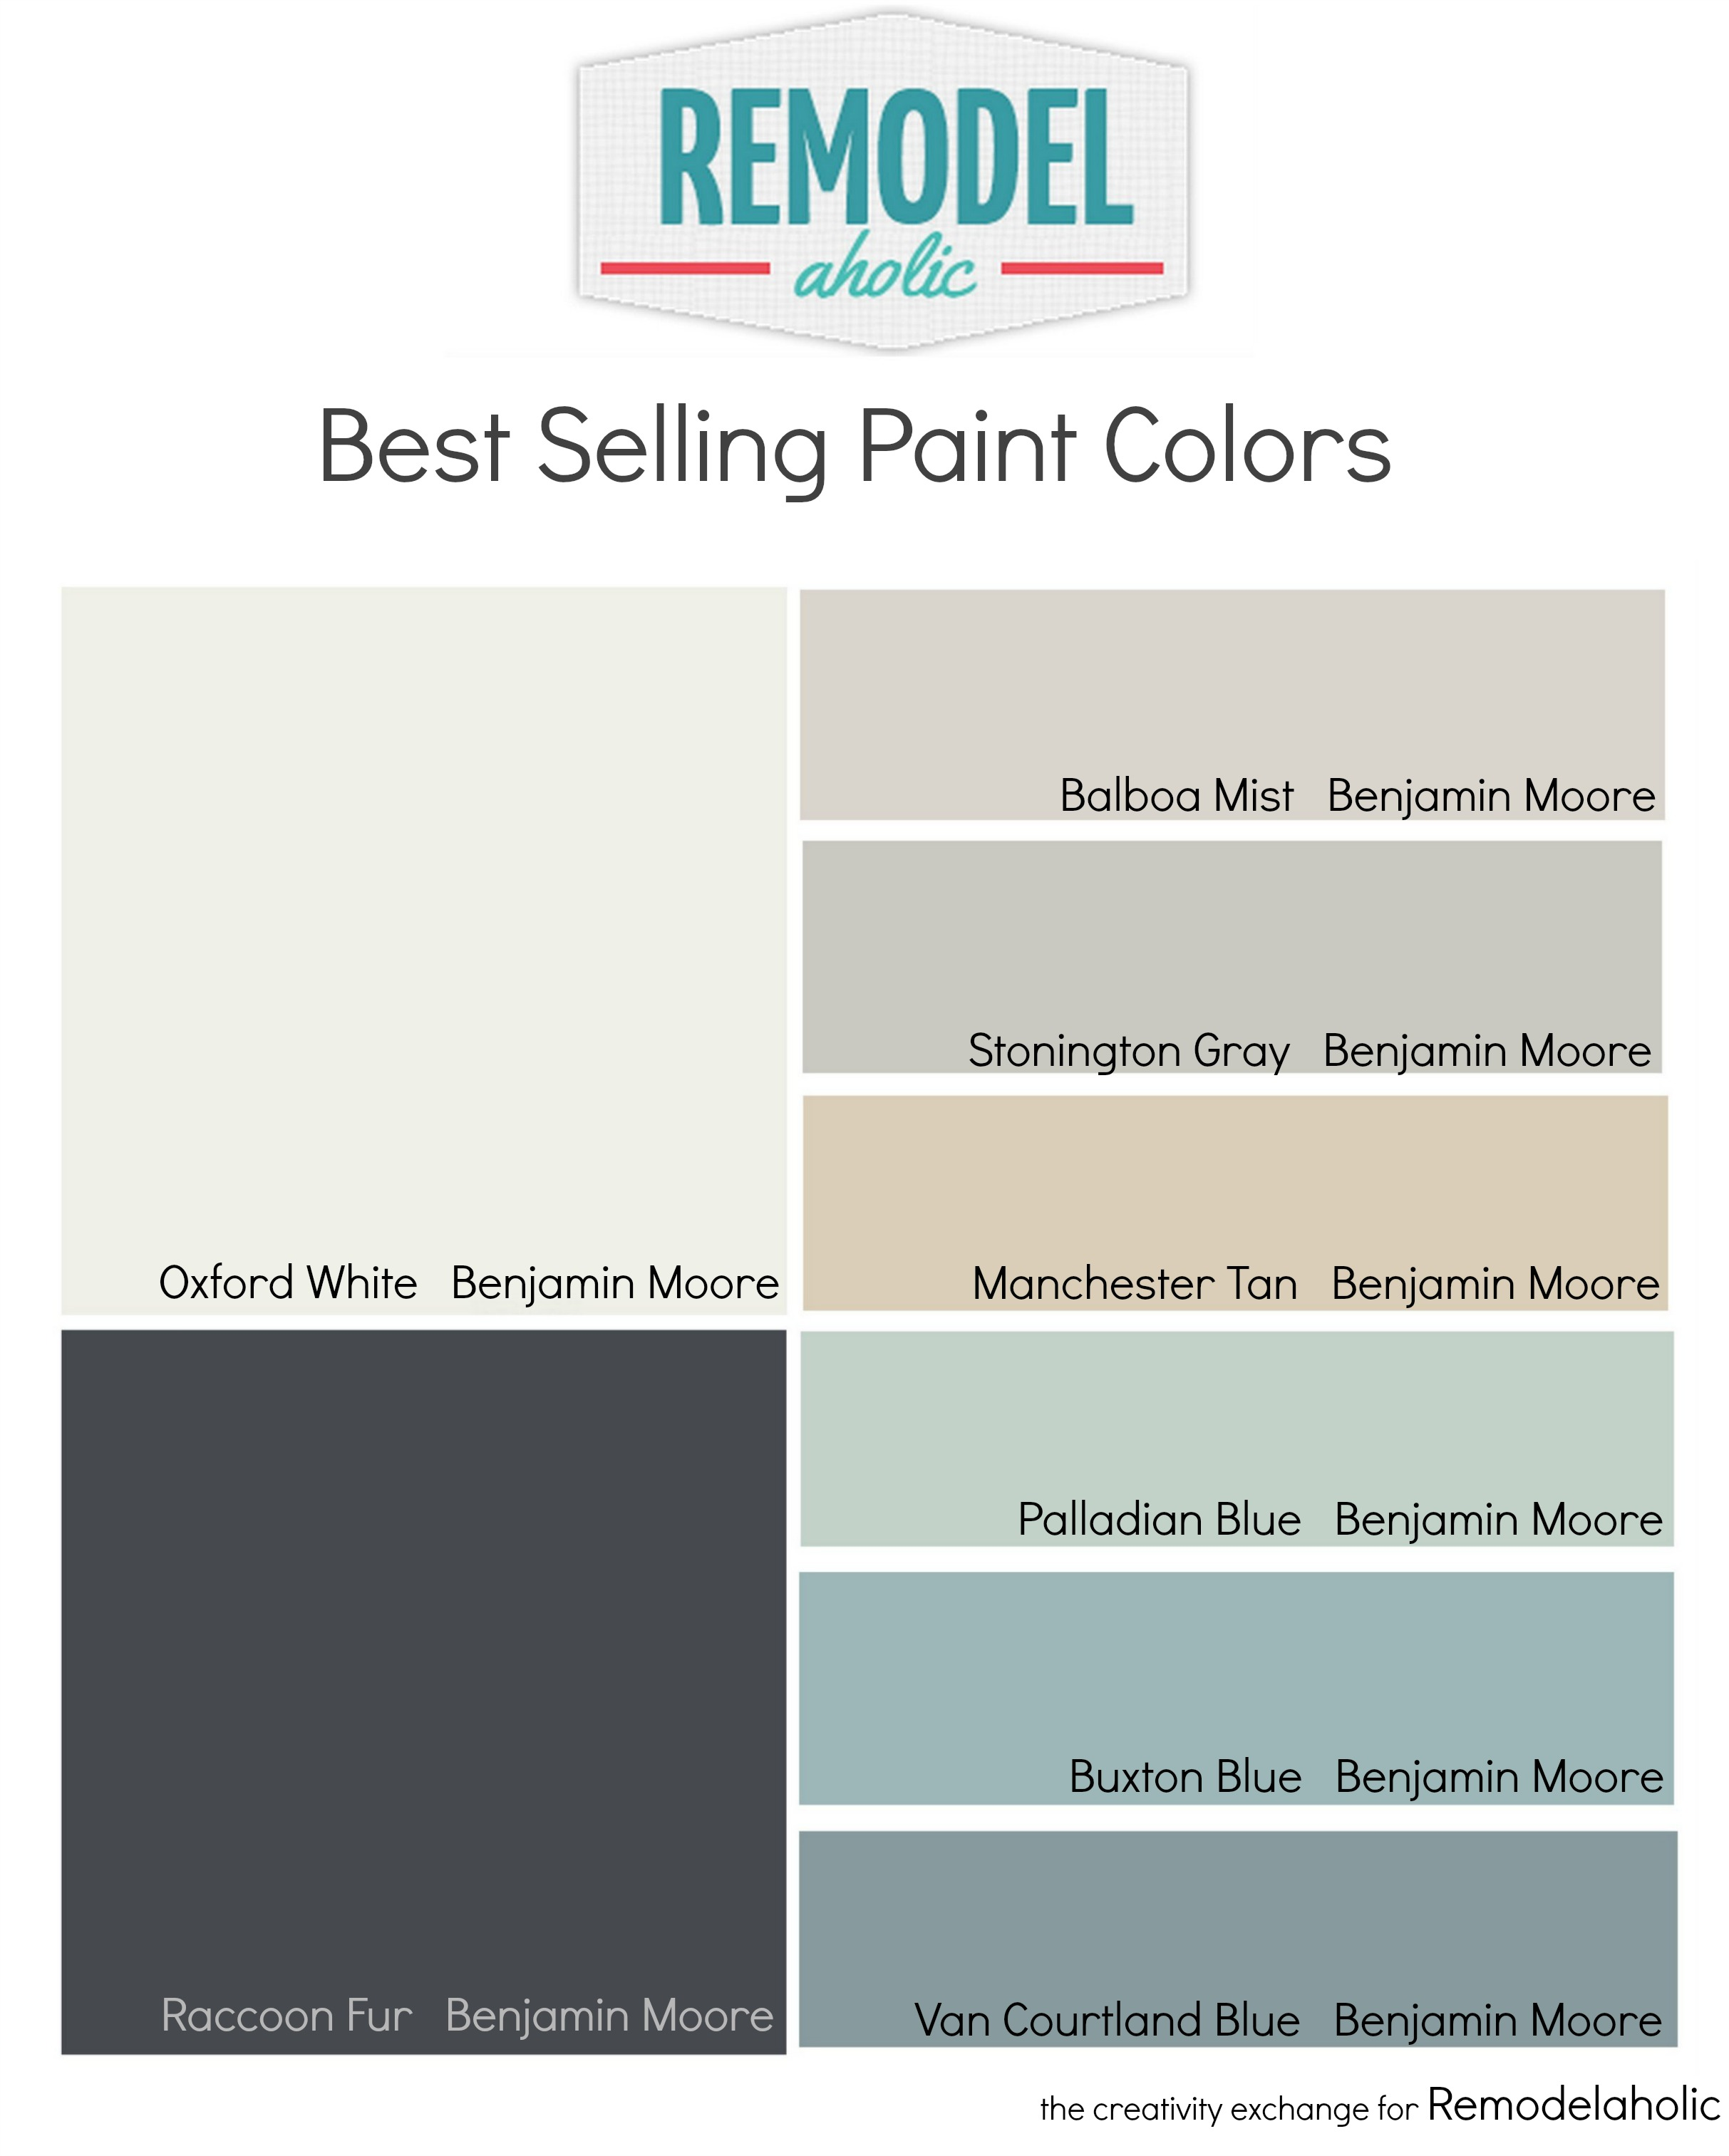 Remodelaholic most popular and best selling paint colors Great paint colors